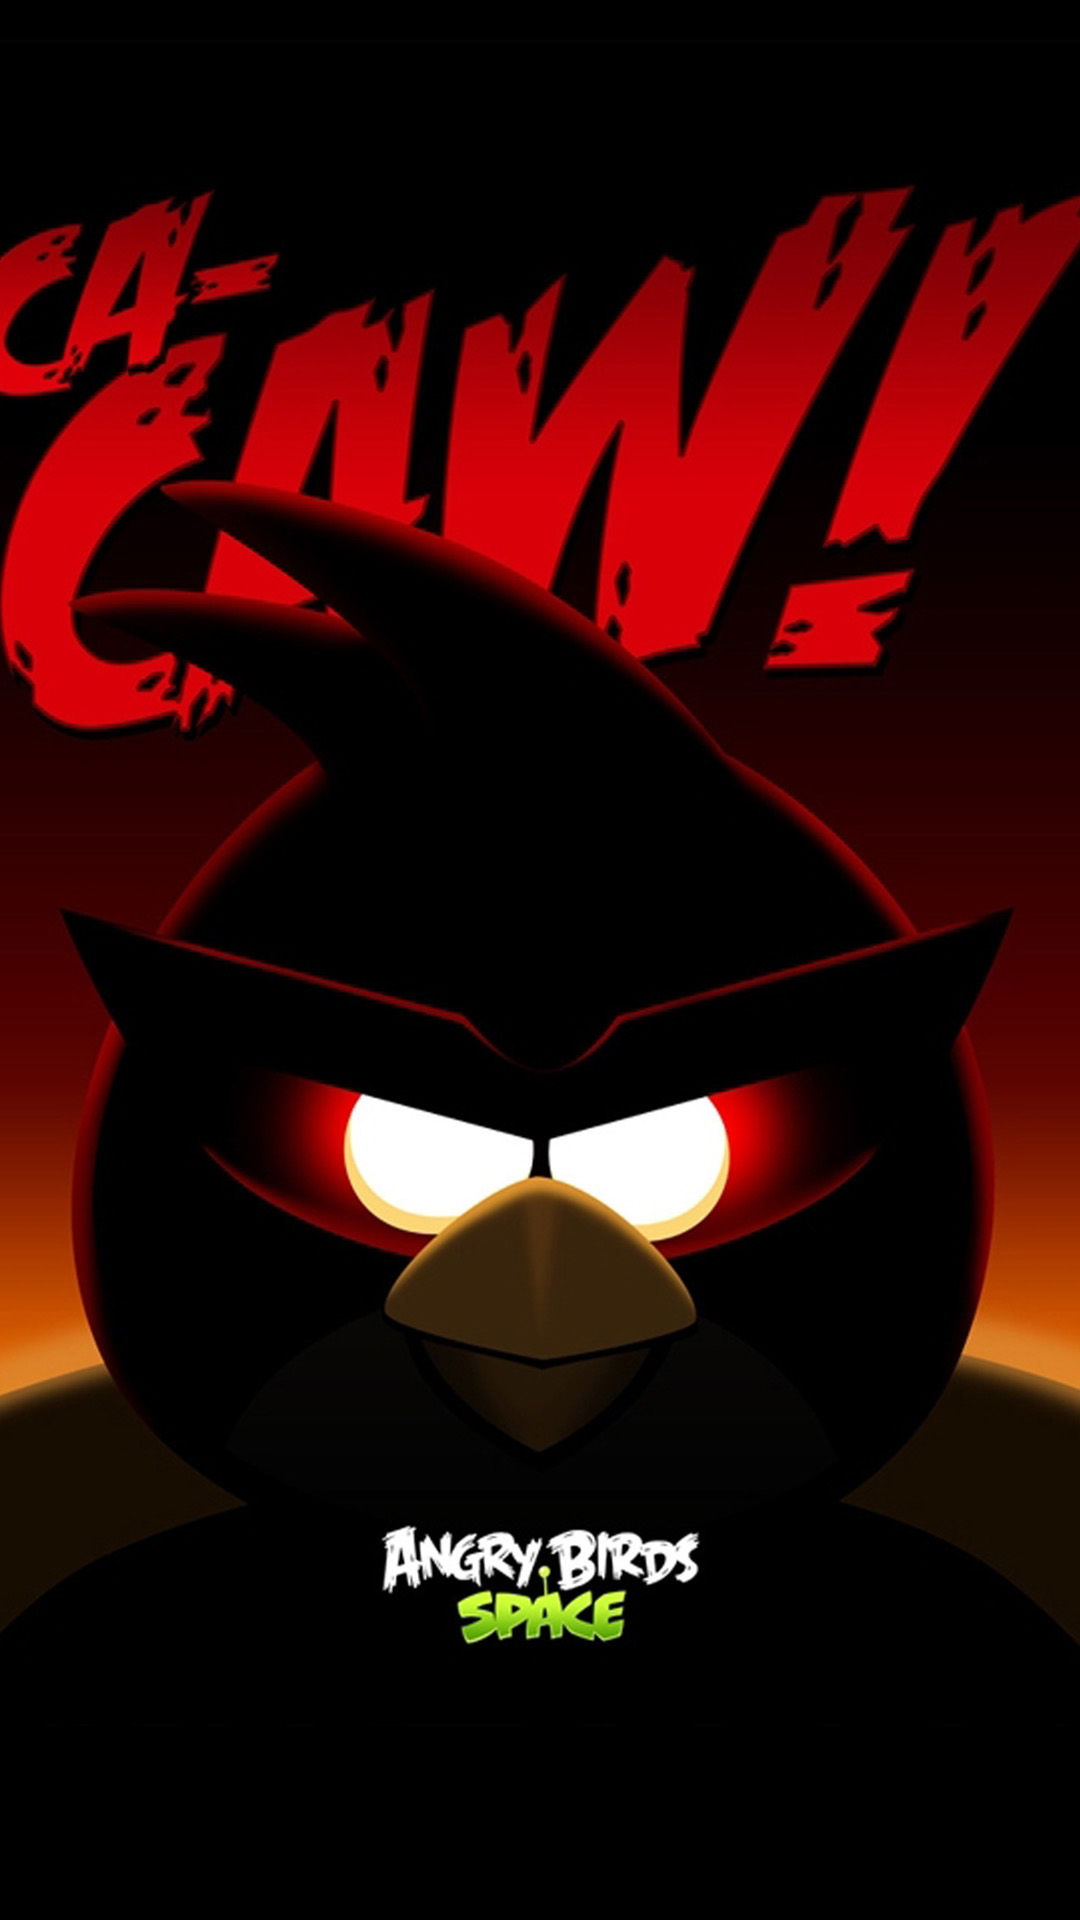 iphone 6 plus angry birds 12 hd wallpaper